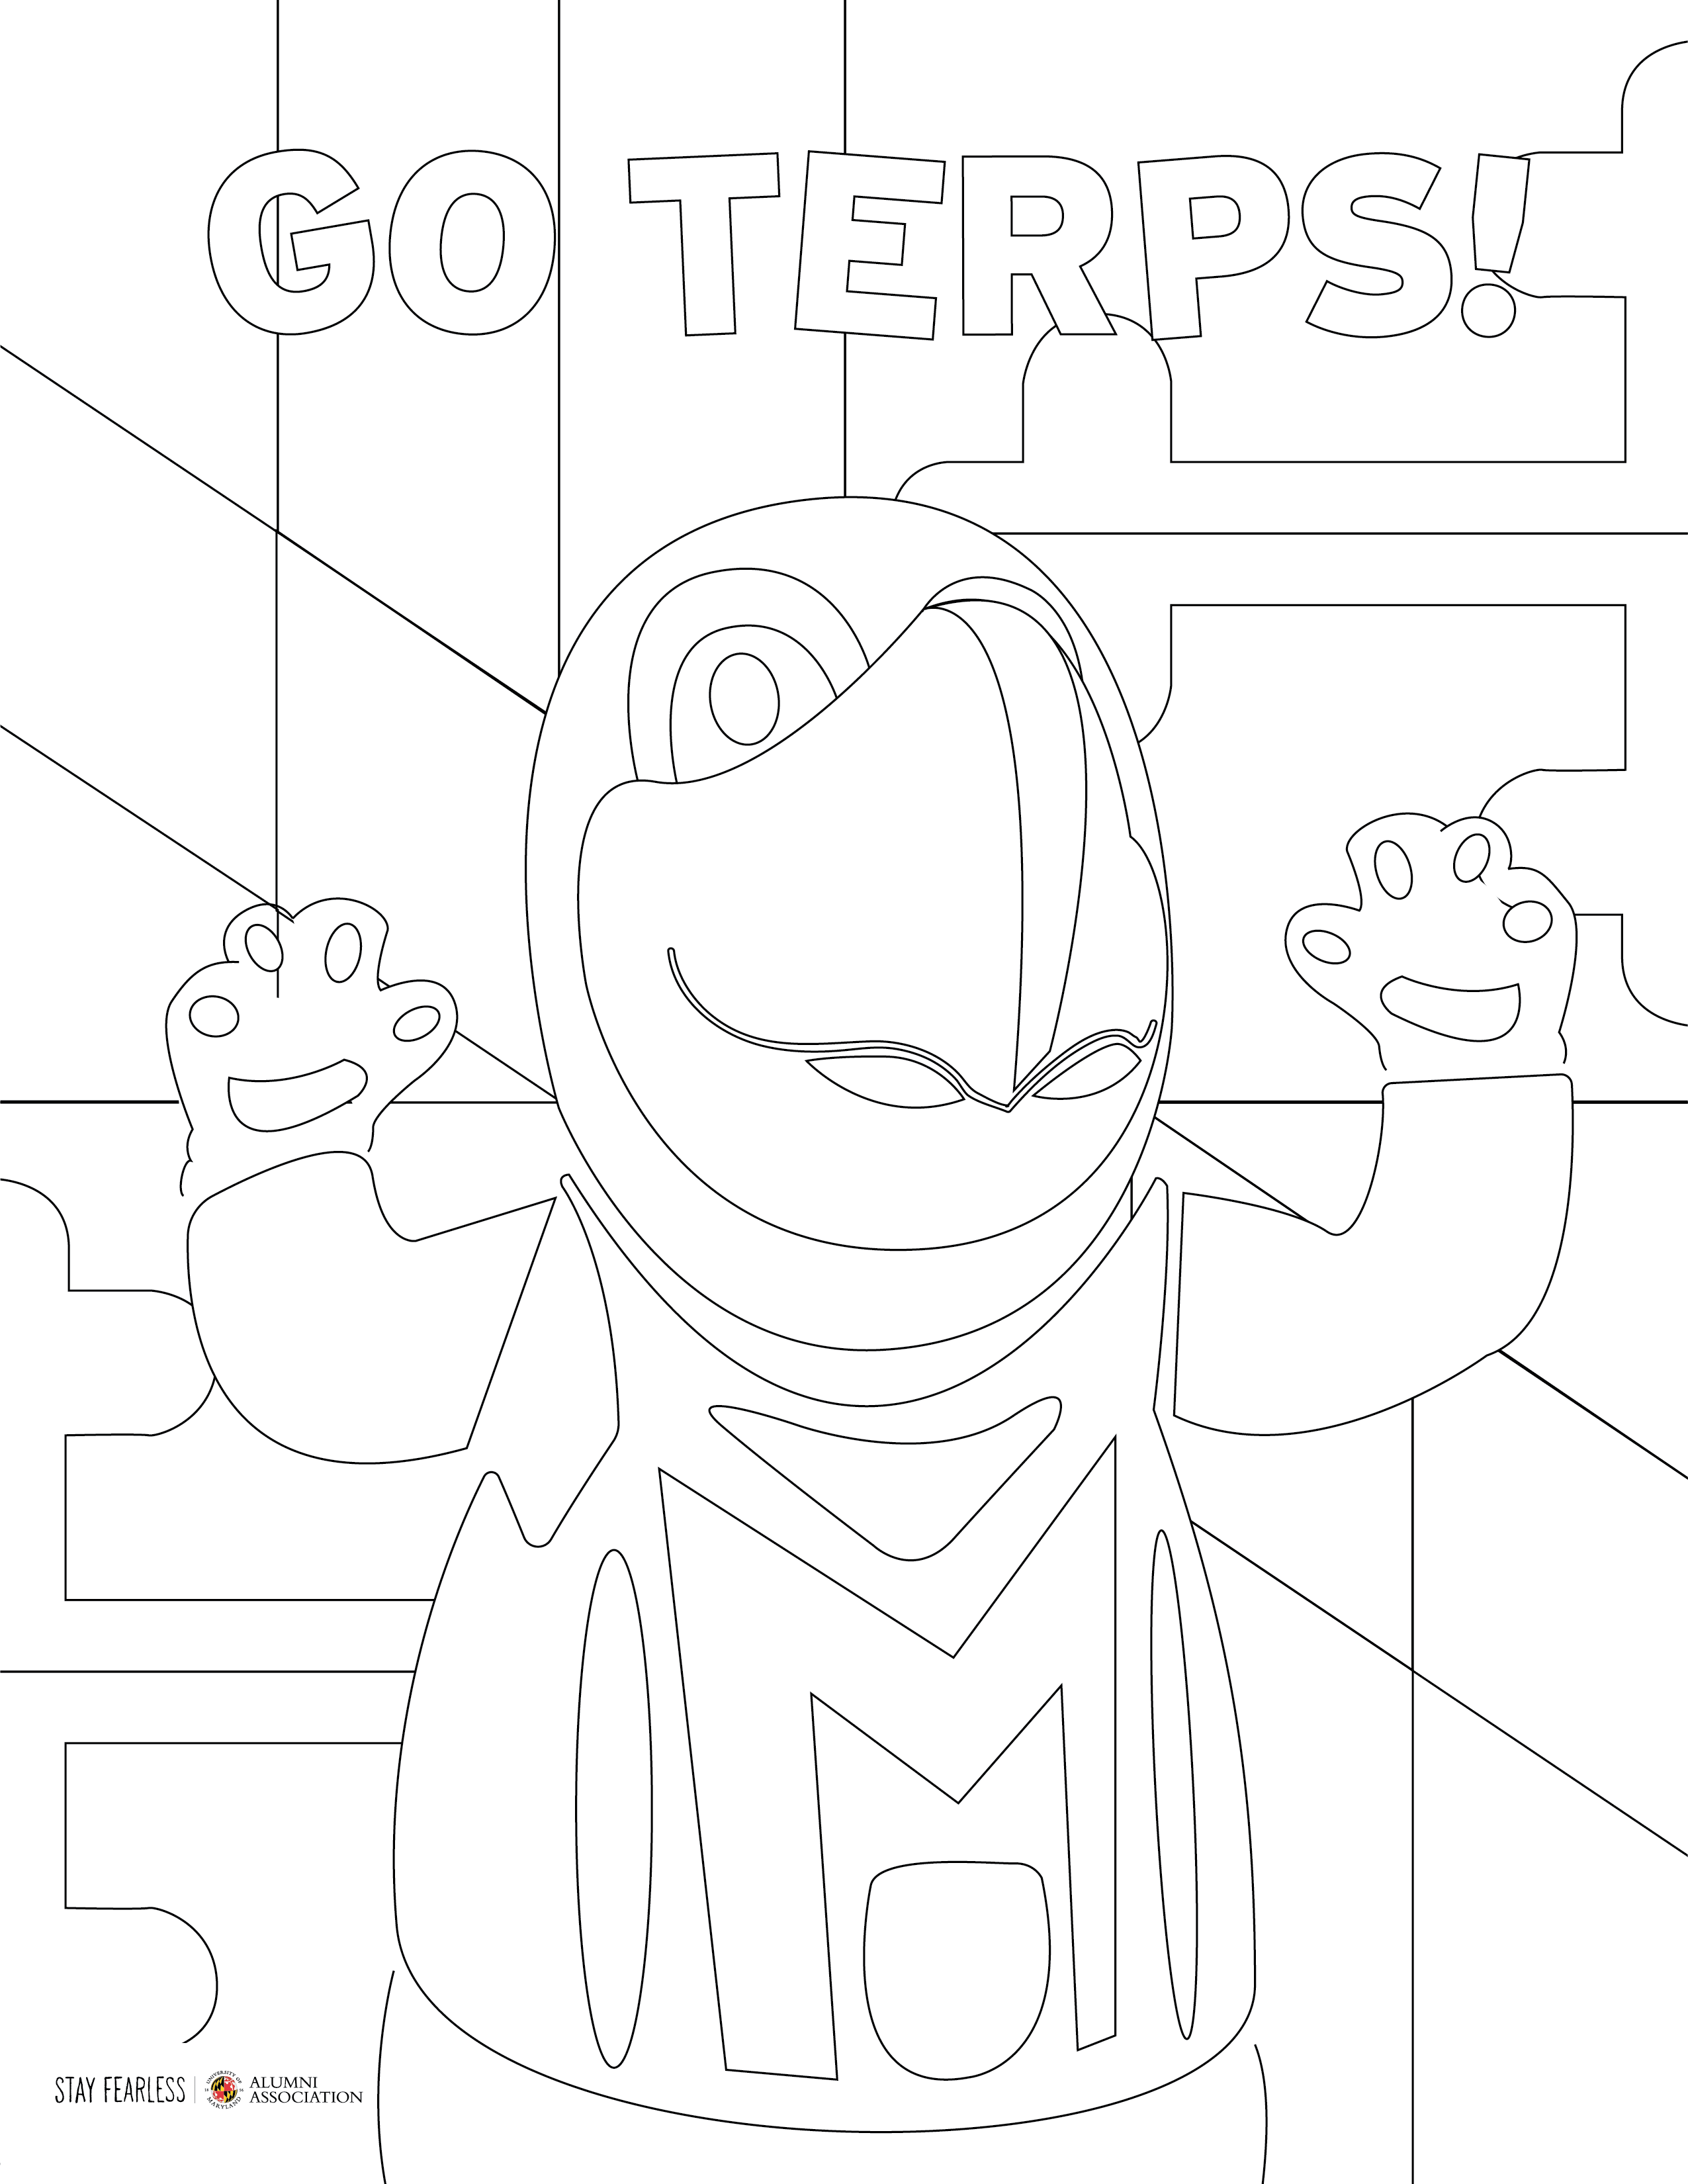 Testudo coloring book page.